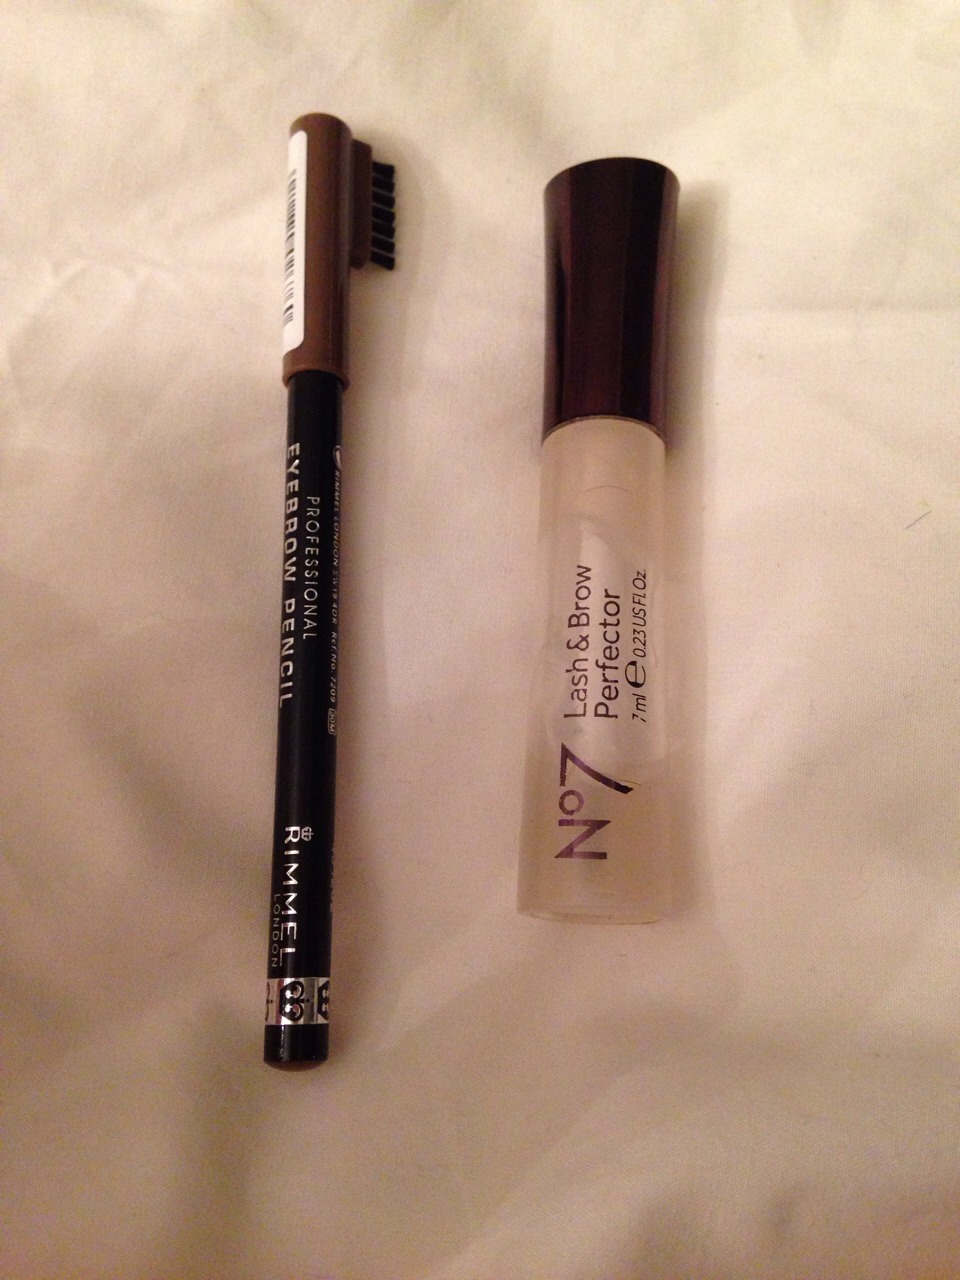 7⃣ - EYEBROW STUFFS I am obsessed with my eyebrow situation and so I brush/fill em in to perfection. I also use this lash and brow perfector from n•7 which keeps your eyebrow in a certain position and is like clear mascara that won't make you look like a dying witch when crying ( u get meh).